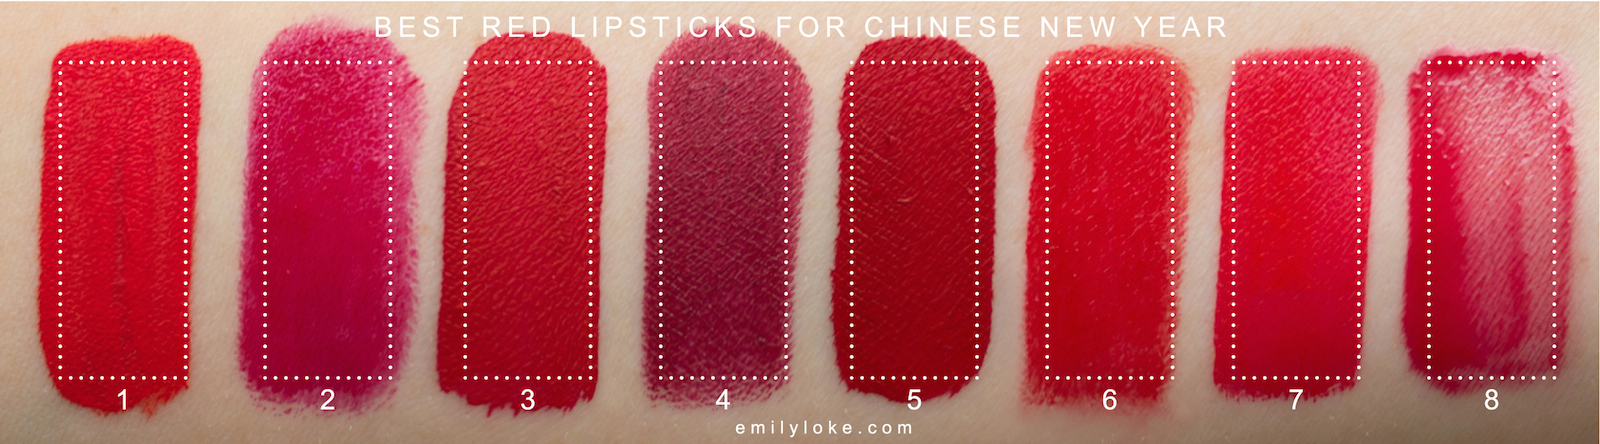 Best CNY Lipsticks